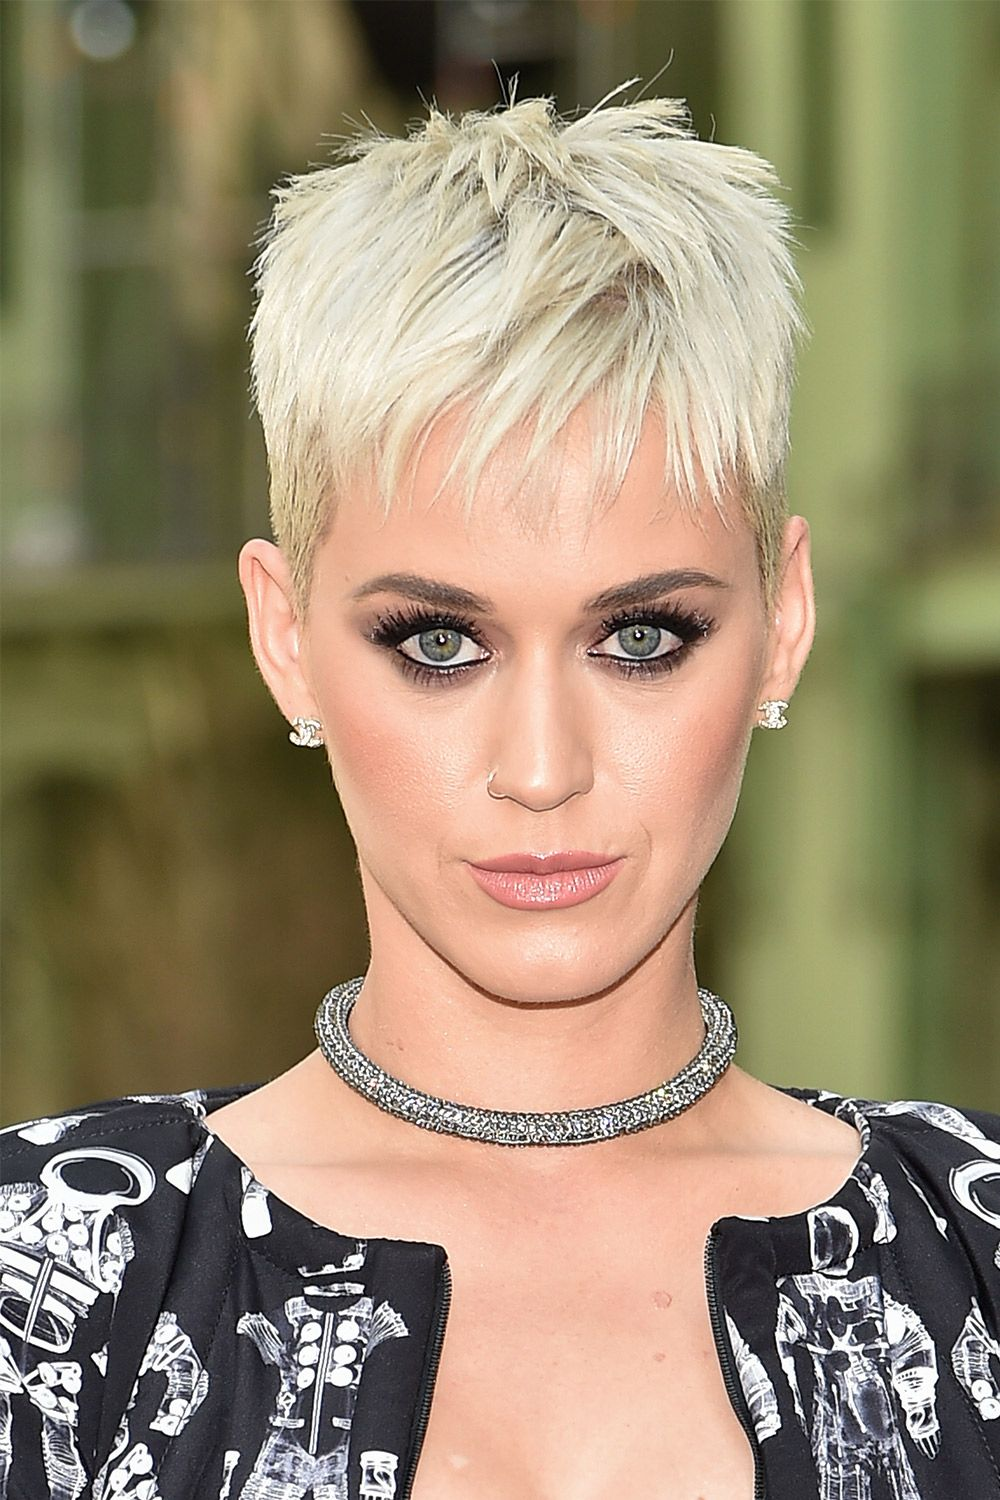 53 Best Pixie Cut Hairstyle Ideas 2018 Cute Celebrity